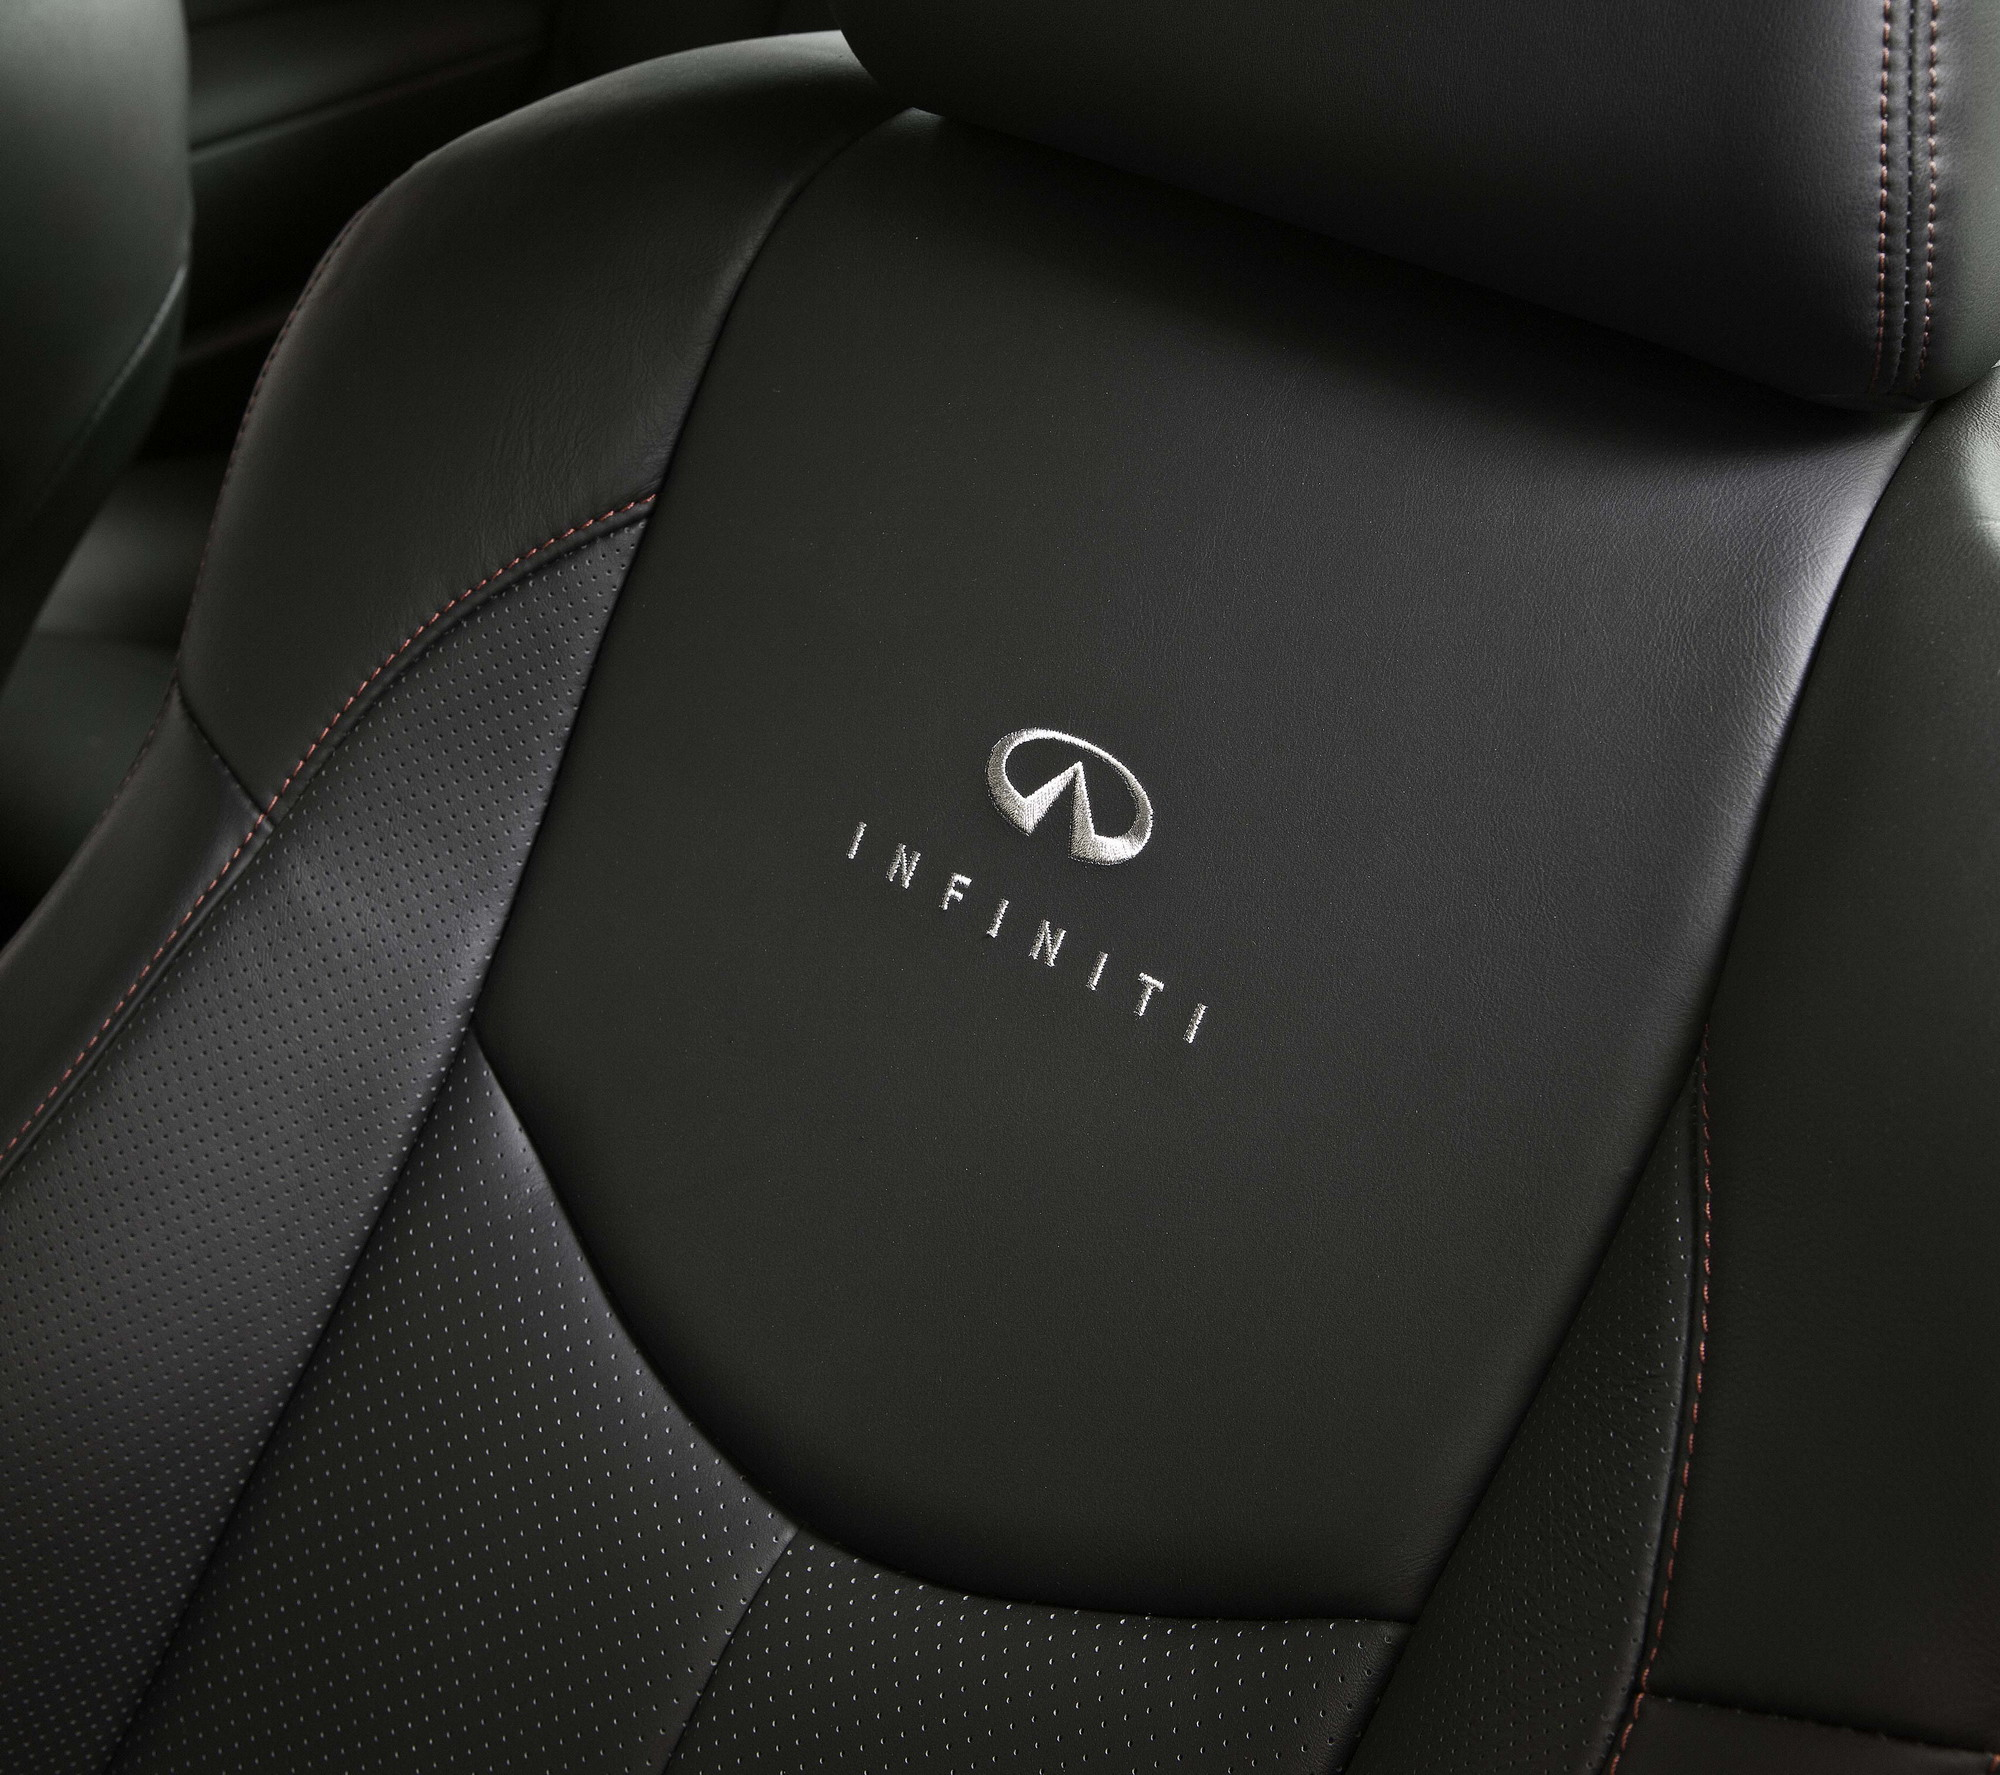 Lease Bmw 428i: 2011 Infiniti IPL G Coupe Gallery 371607